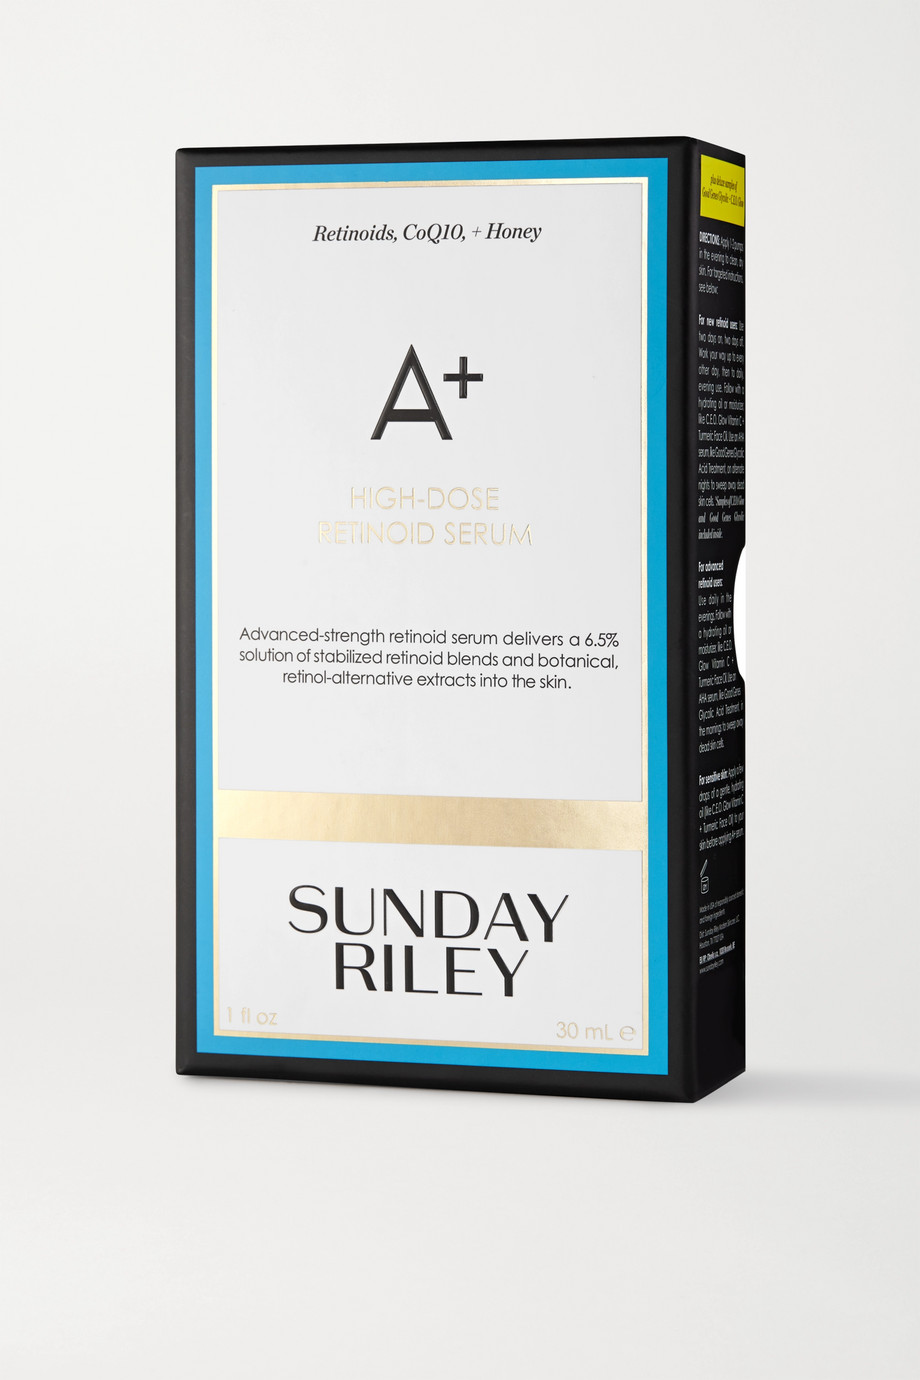 Sunday Riley A+ High-Dose Retinoid Serum, 30ml